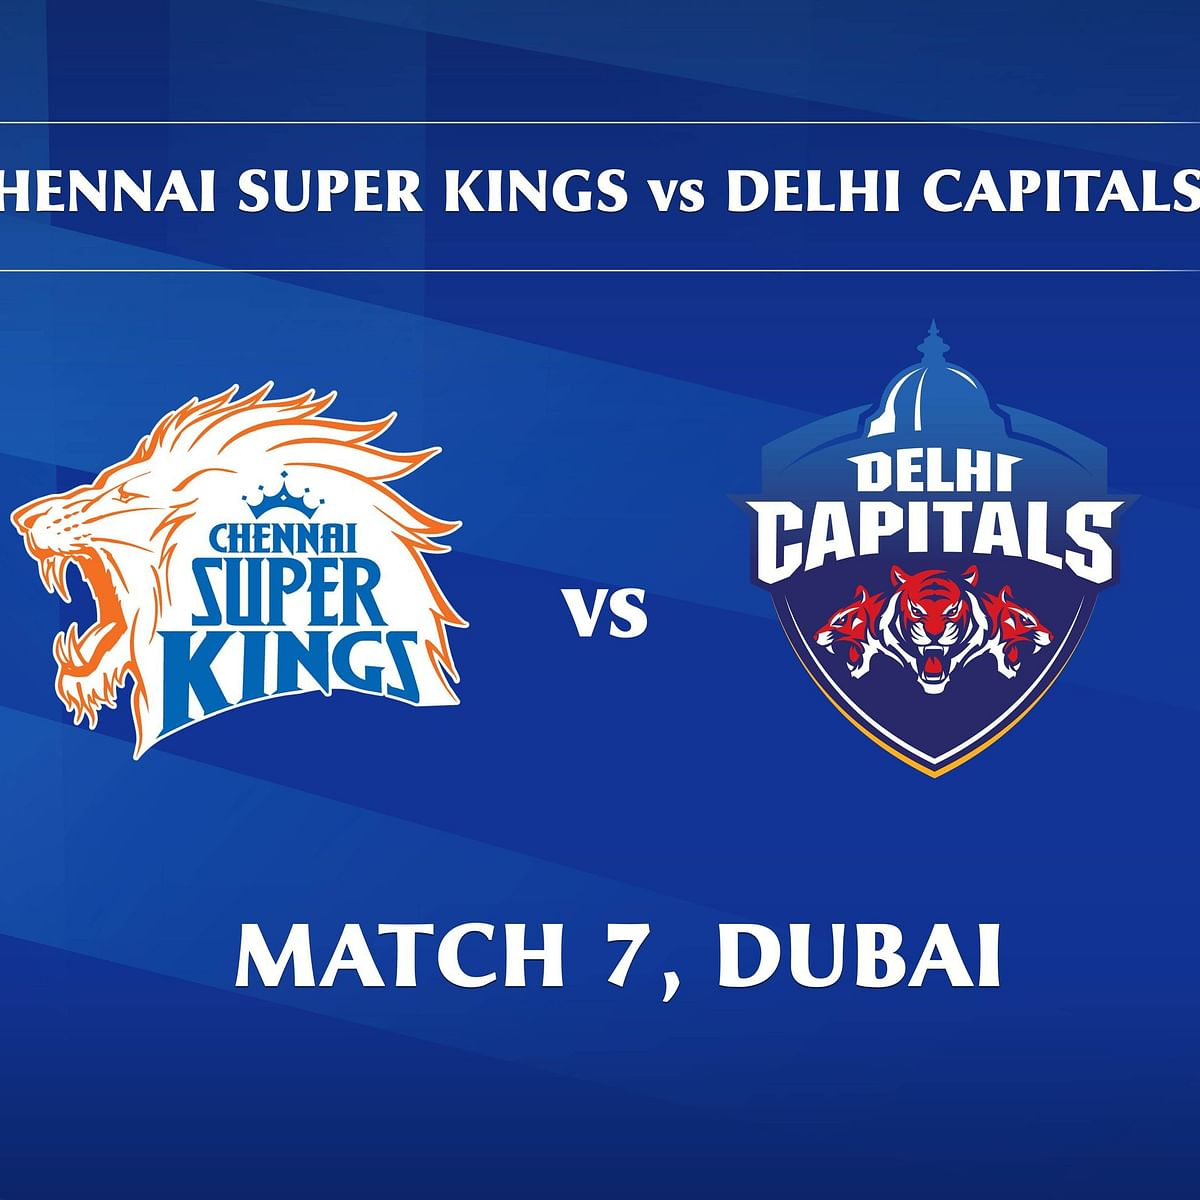 Chennai Super Kings vs Delhi Capitals LIVE: Score, Commentary for the 7th match of IPL 2020